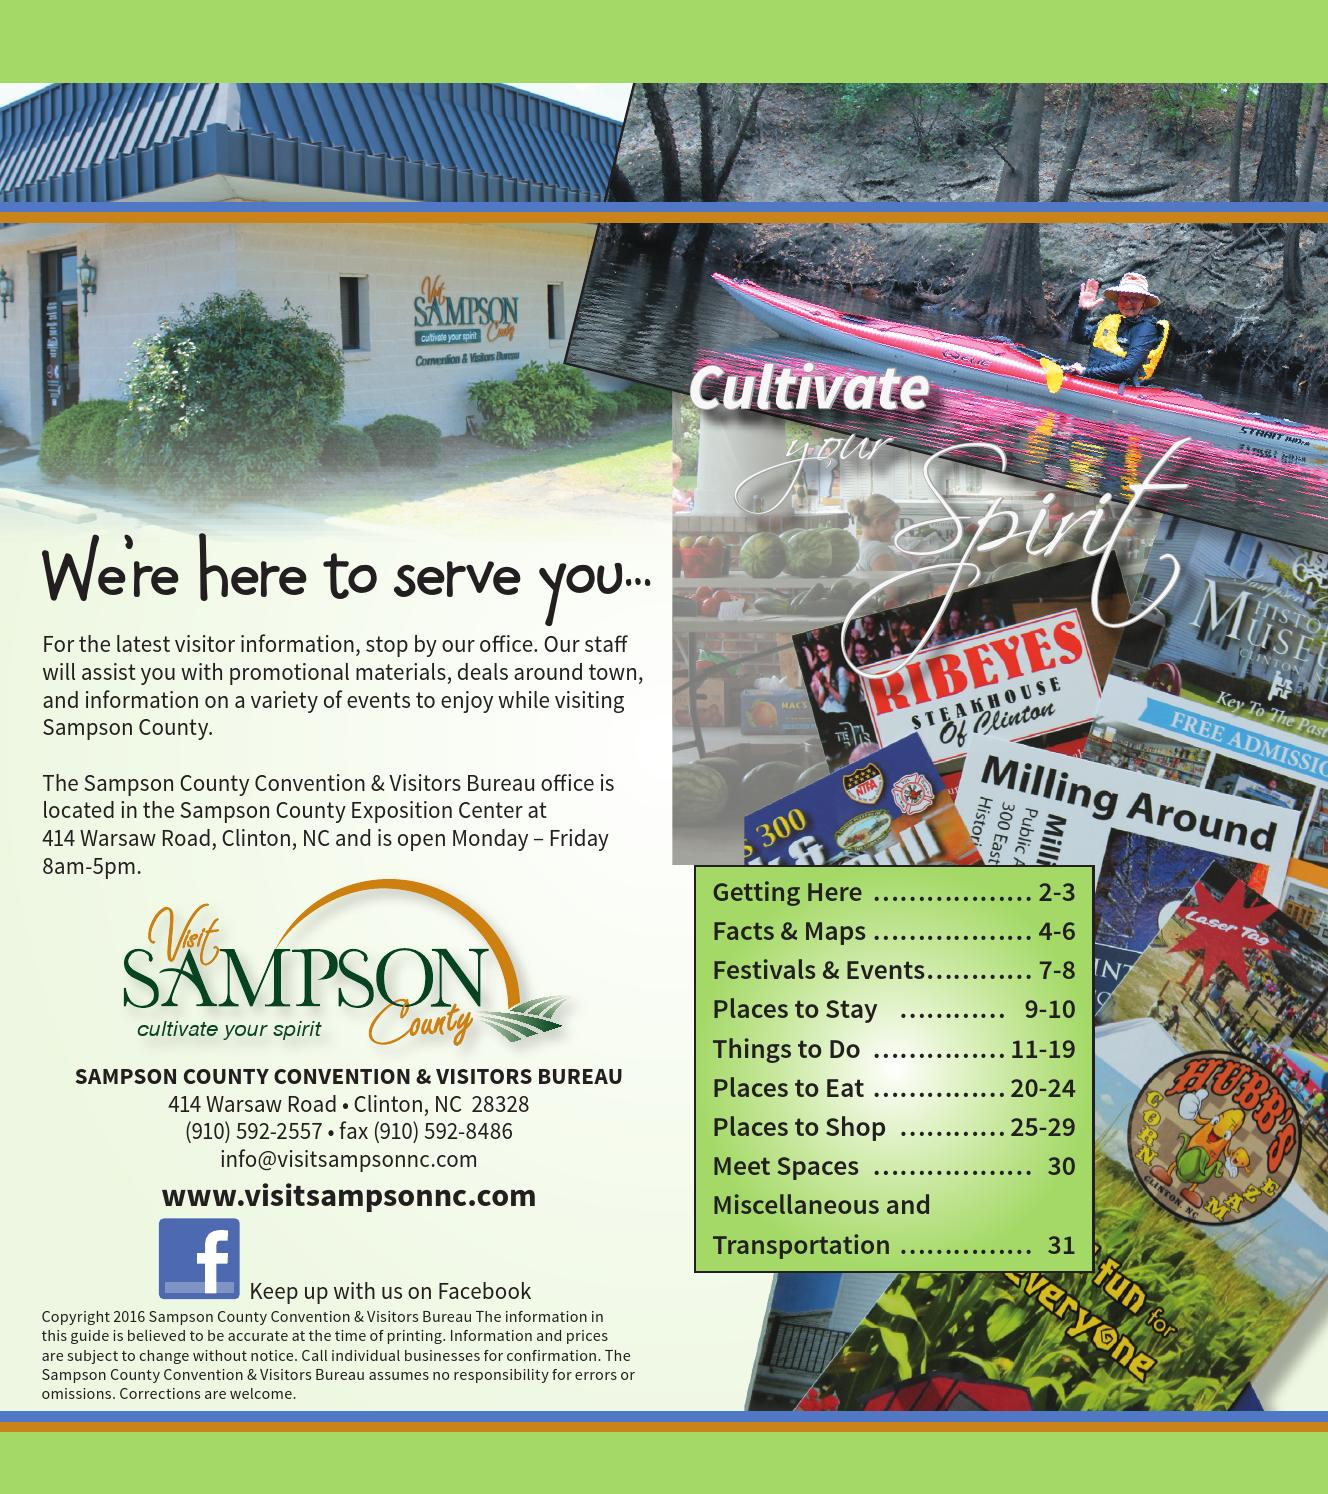 Sampson County Visitor Guide 2016 by Jim Stallard - issuu